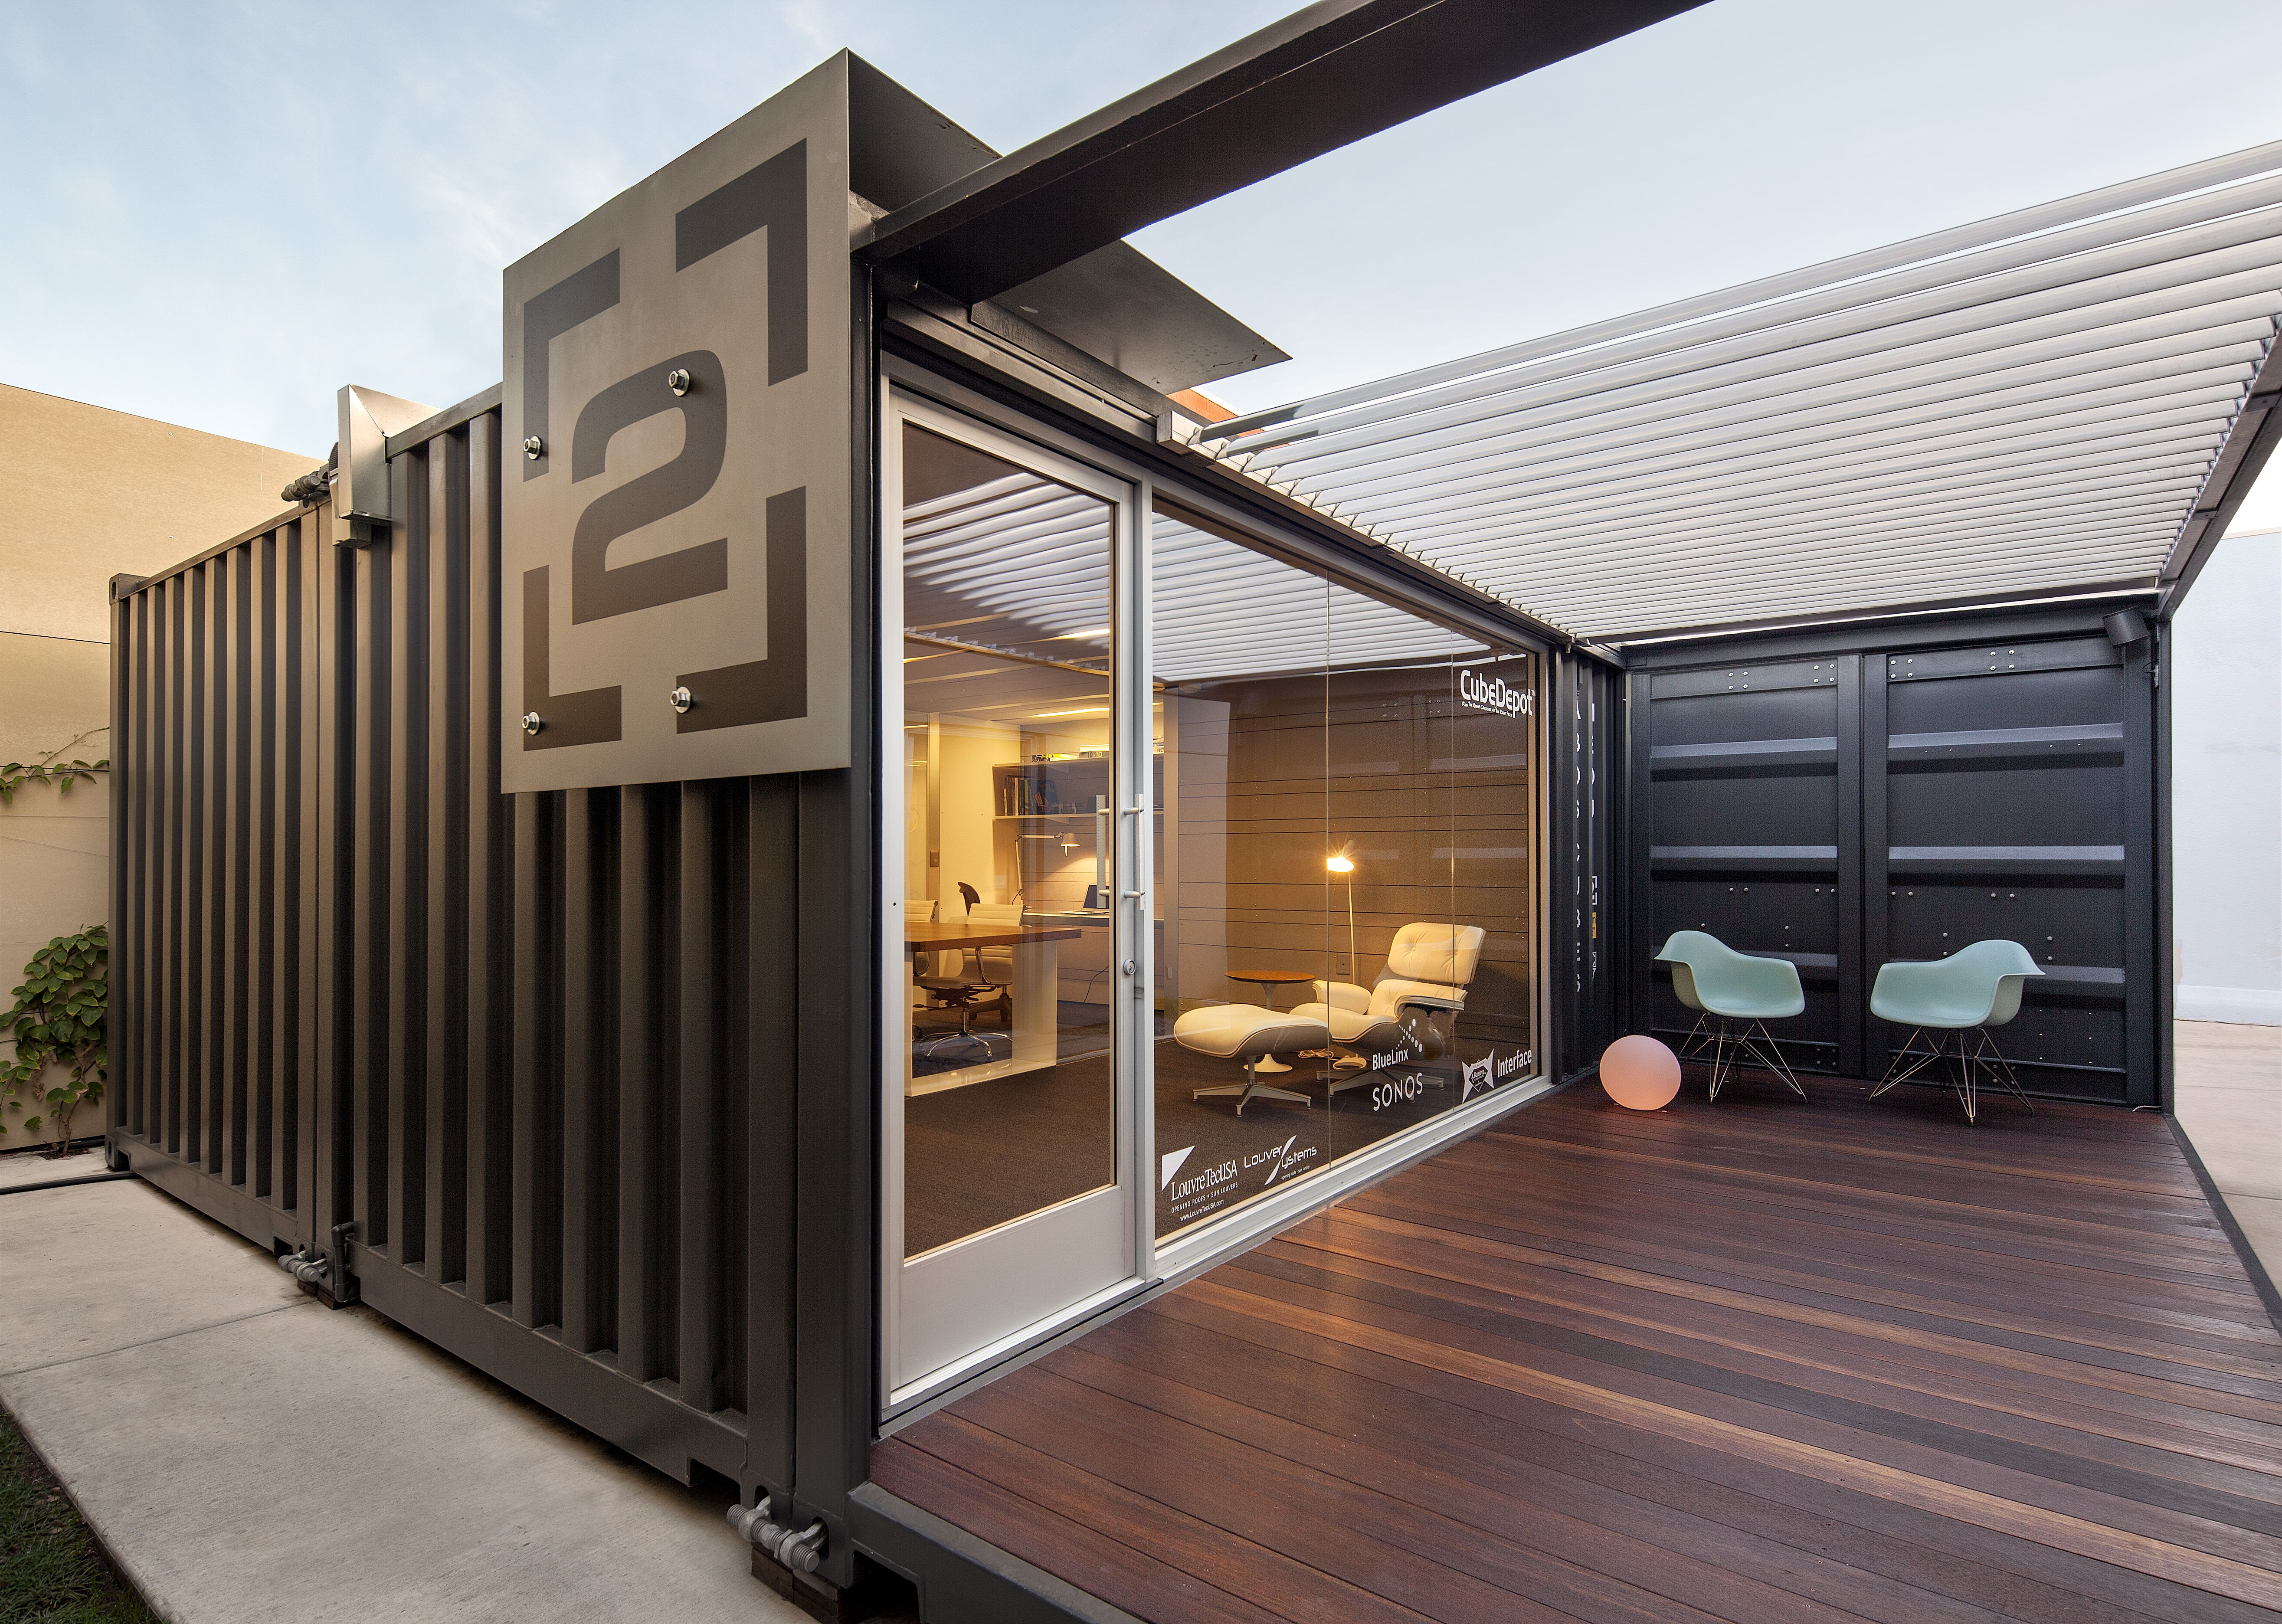 Interested In Creative Ways To Reuse Shipping Containers